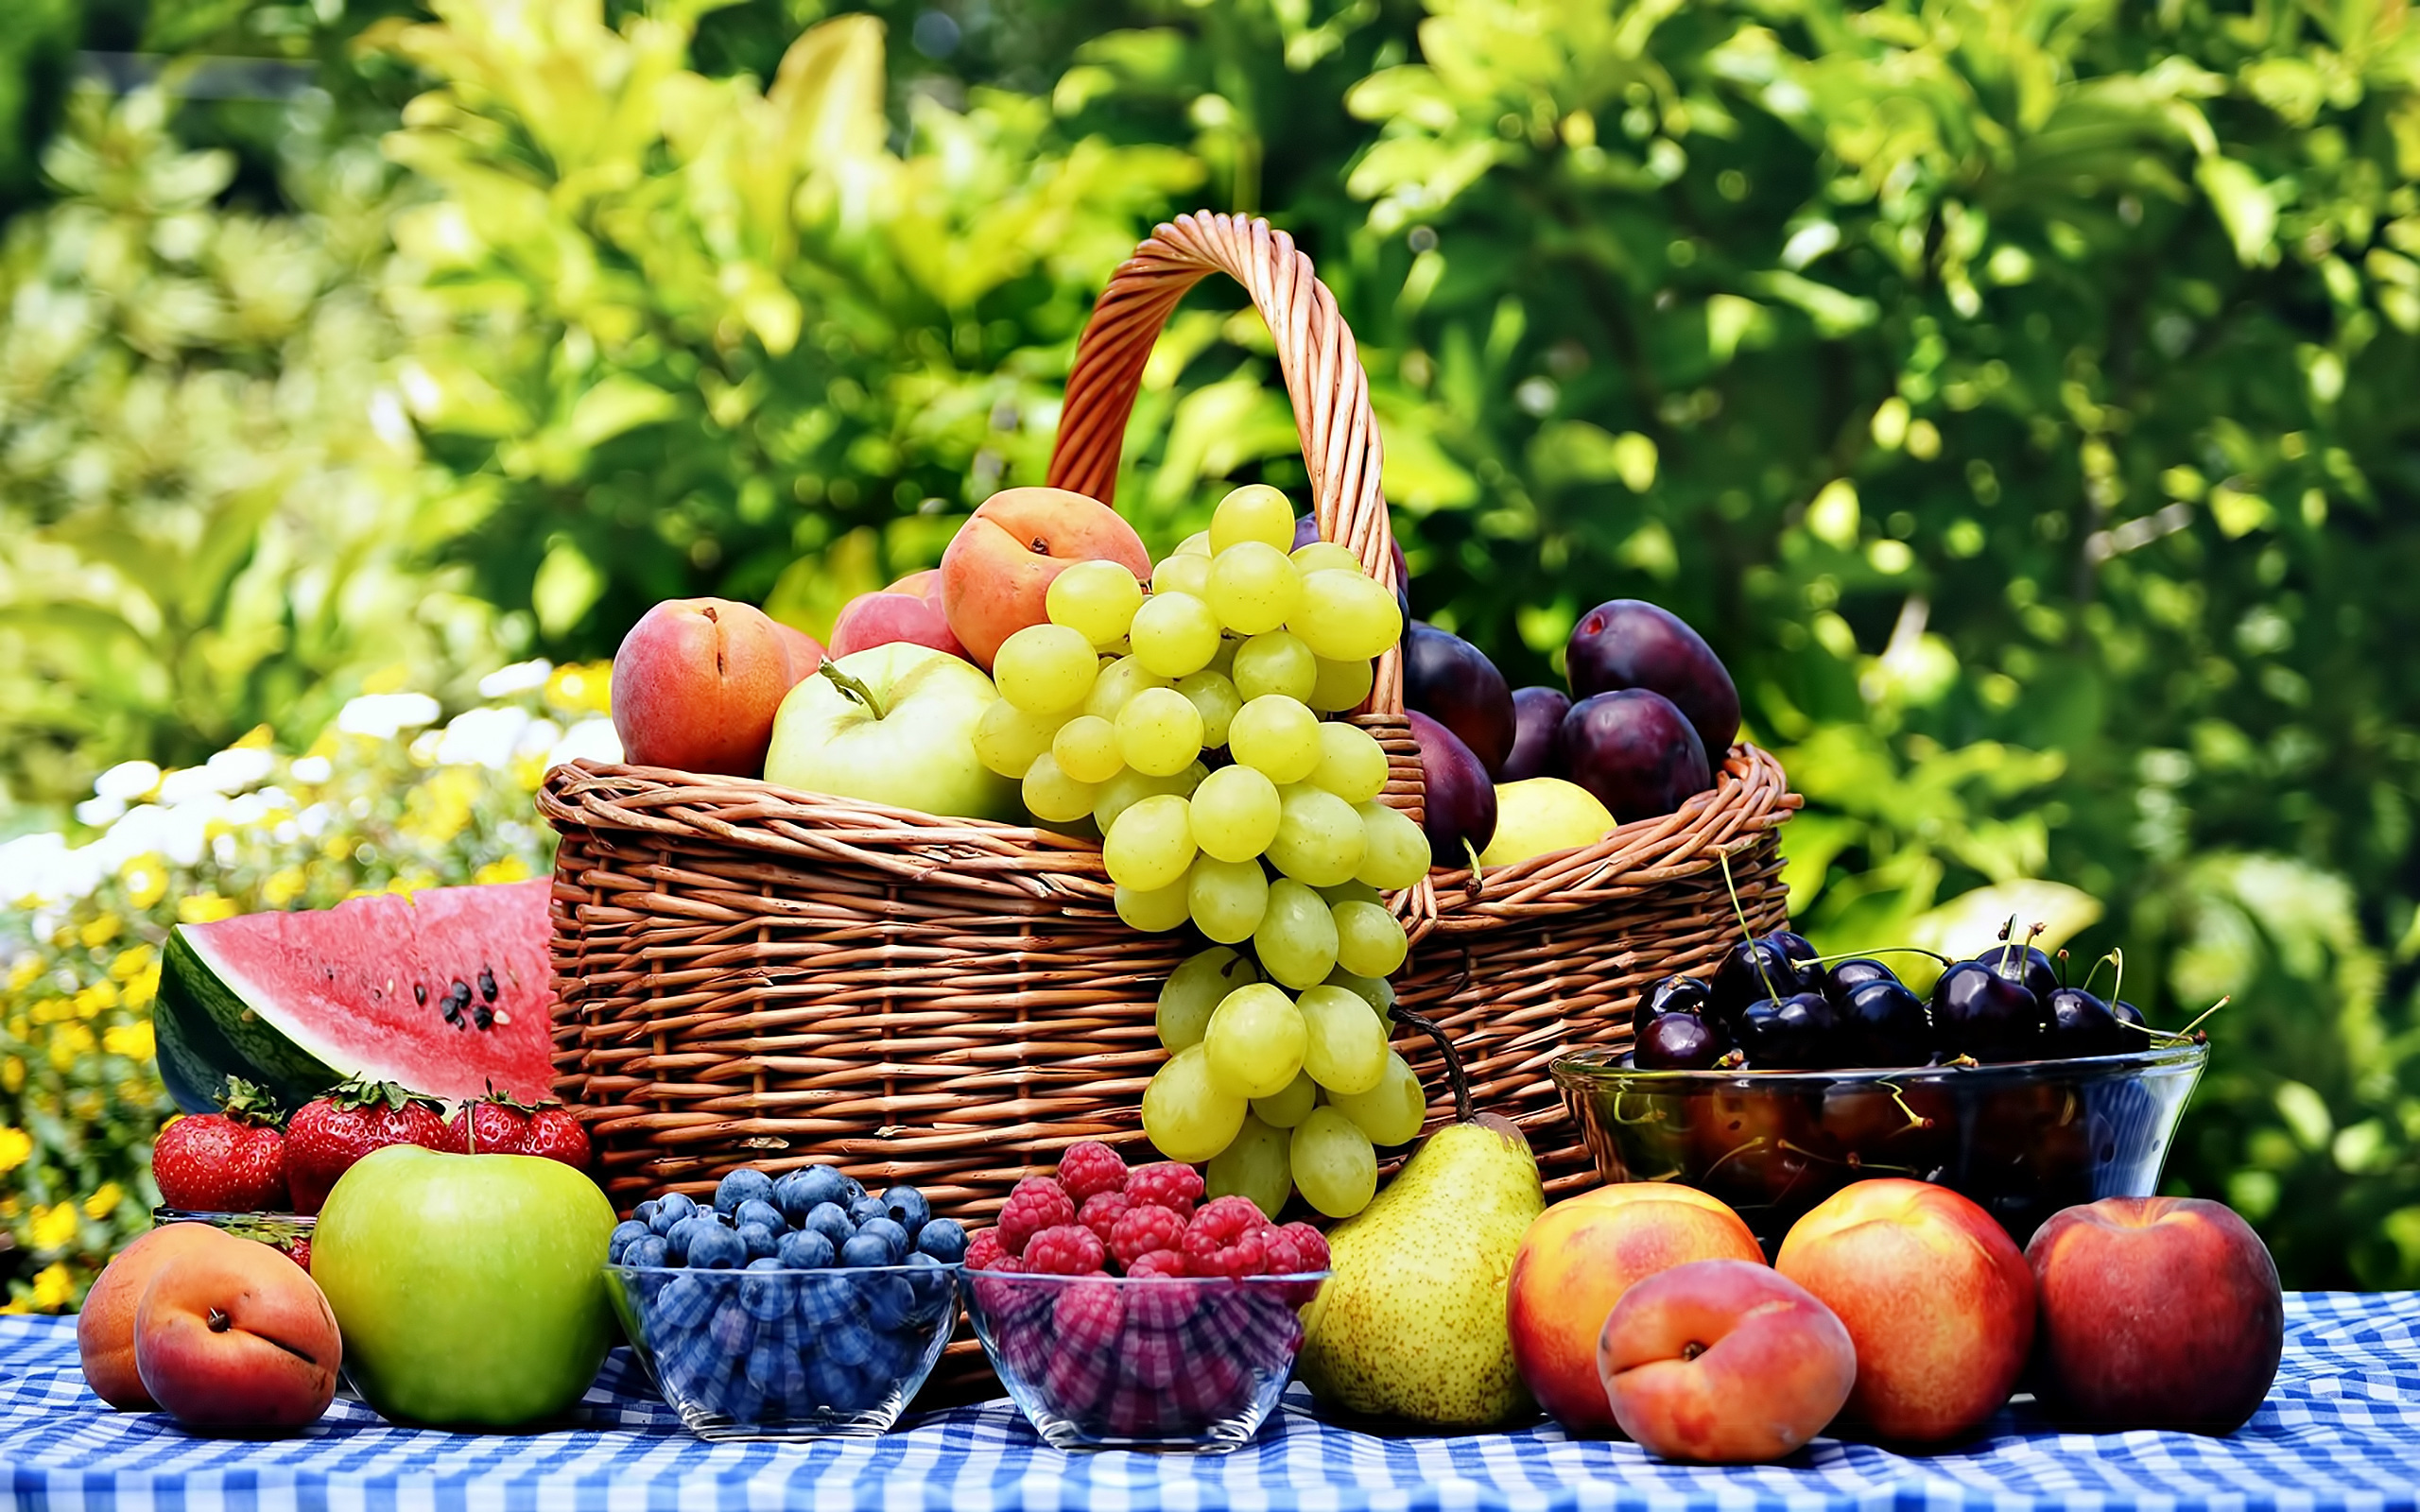 south-florida-fresh-fruit-delivery-service-1